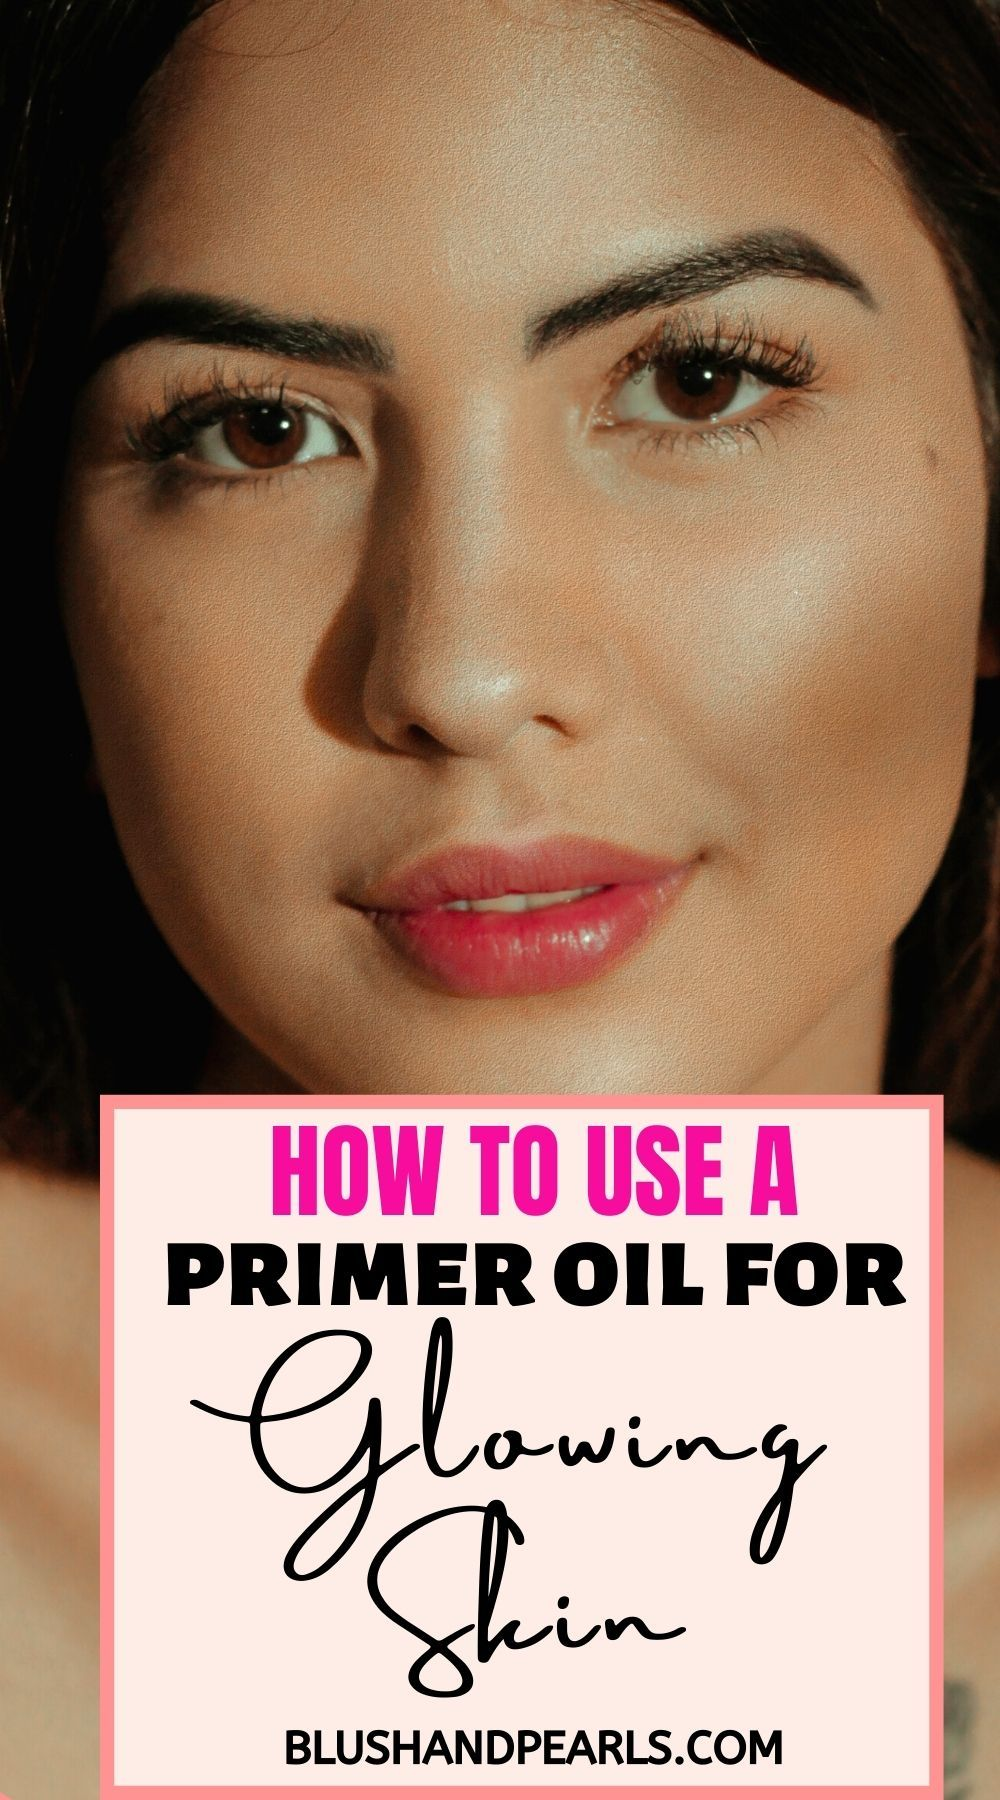 How To Use A Primer Oil For Glowing Skin in 2020 Primer